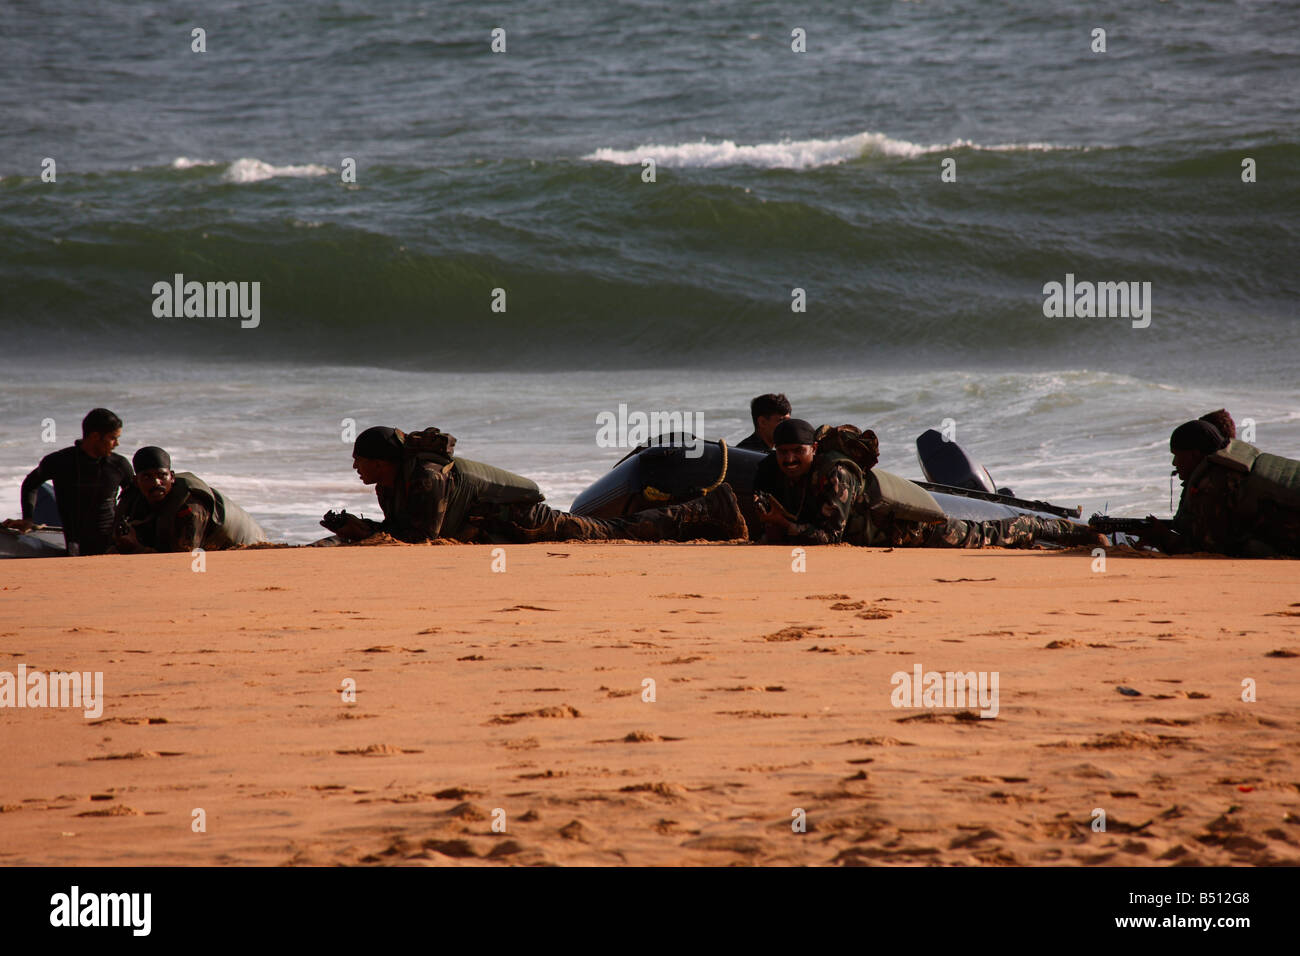 Amphibious Army excercise demo - Stock Image